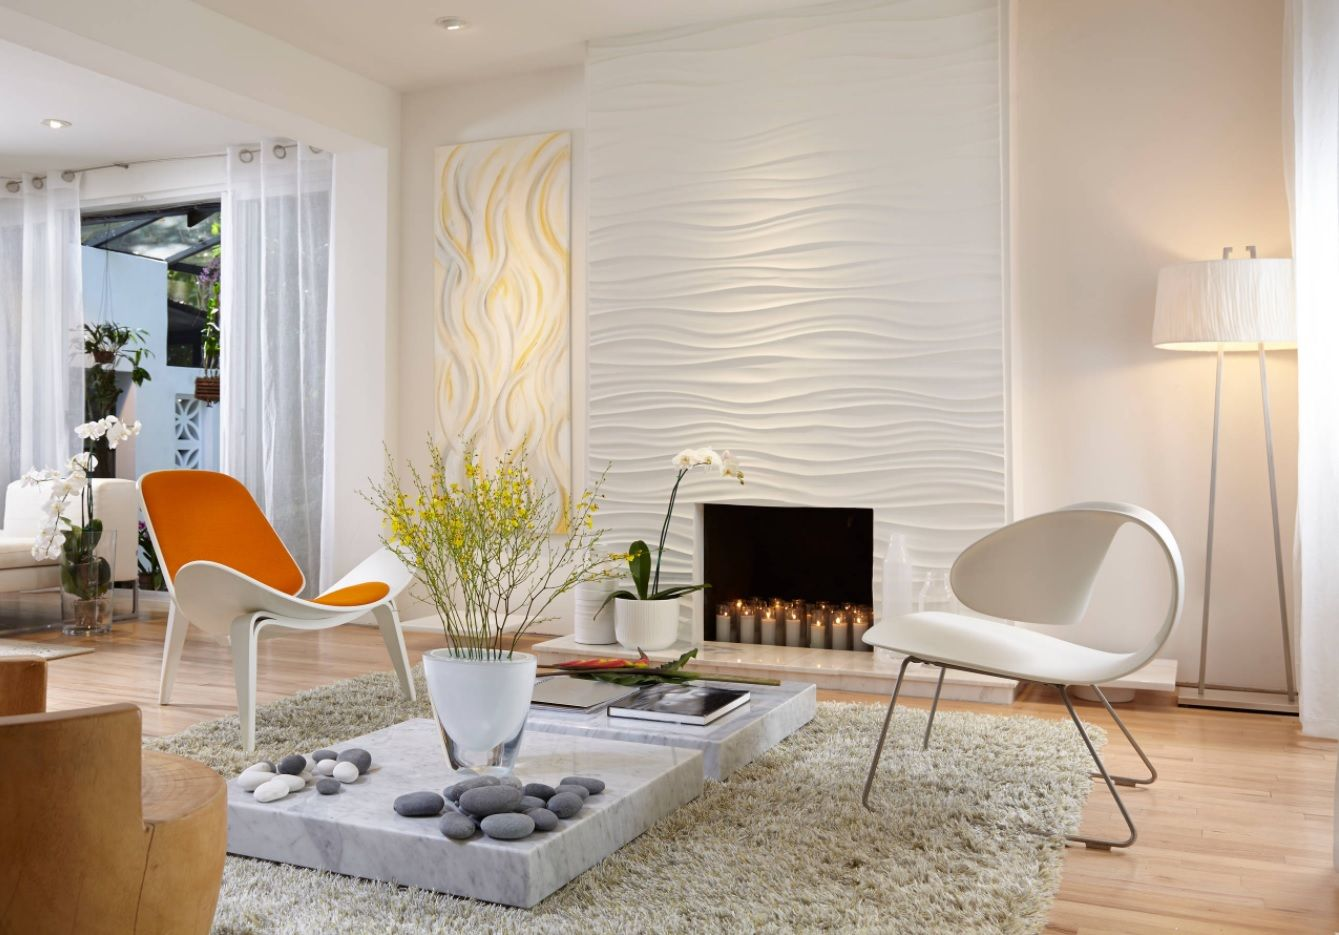 Zen Interior Design Concept for Your Home. Stones and natural plant in the room